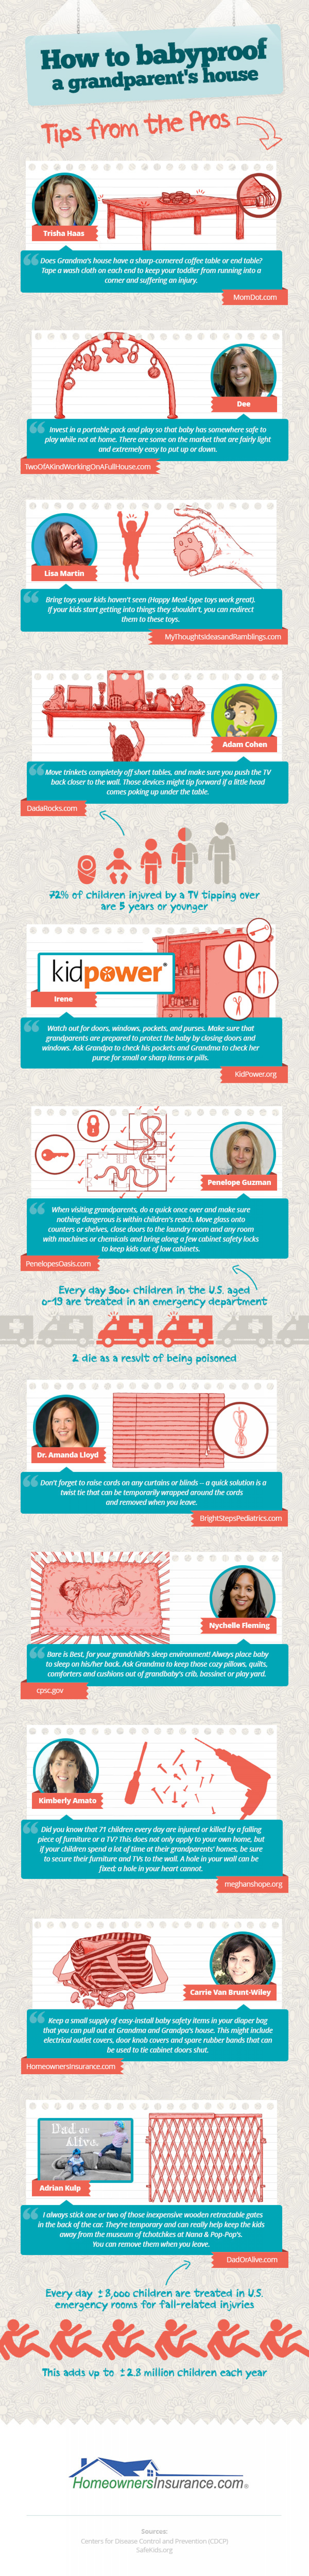 How to babyproof a grandparent's house Infographic